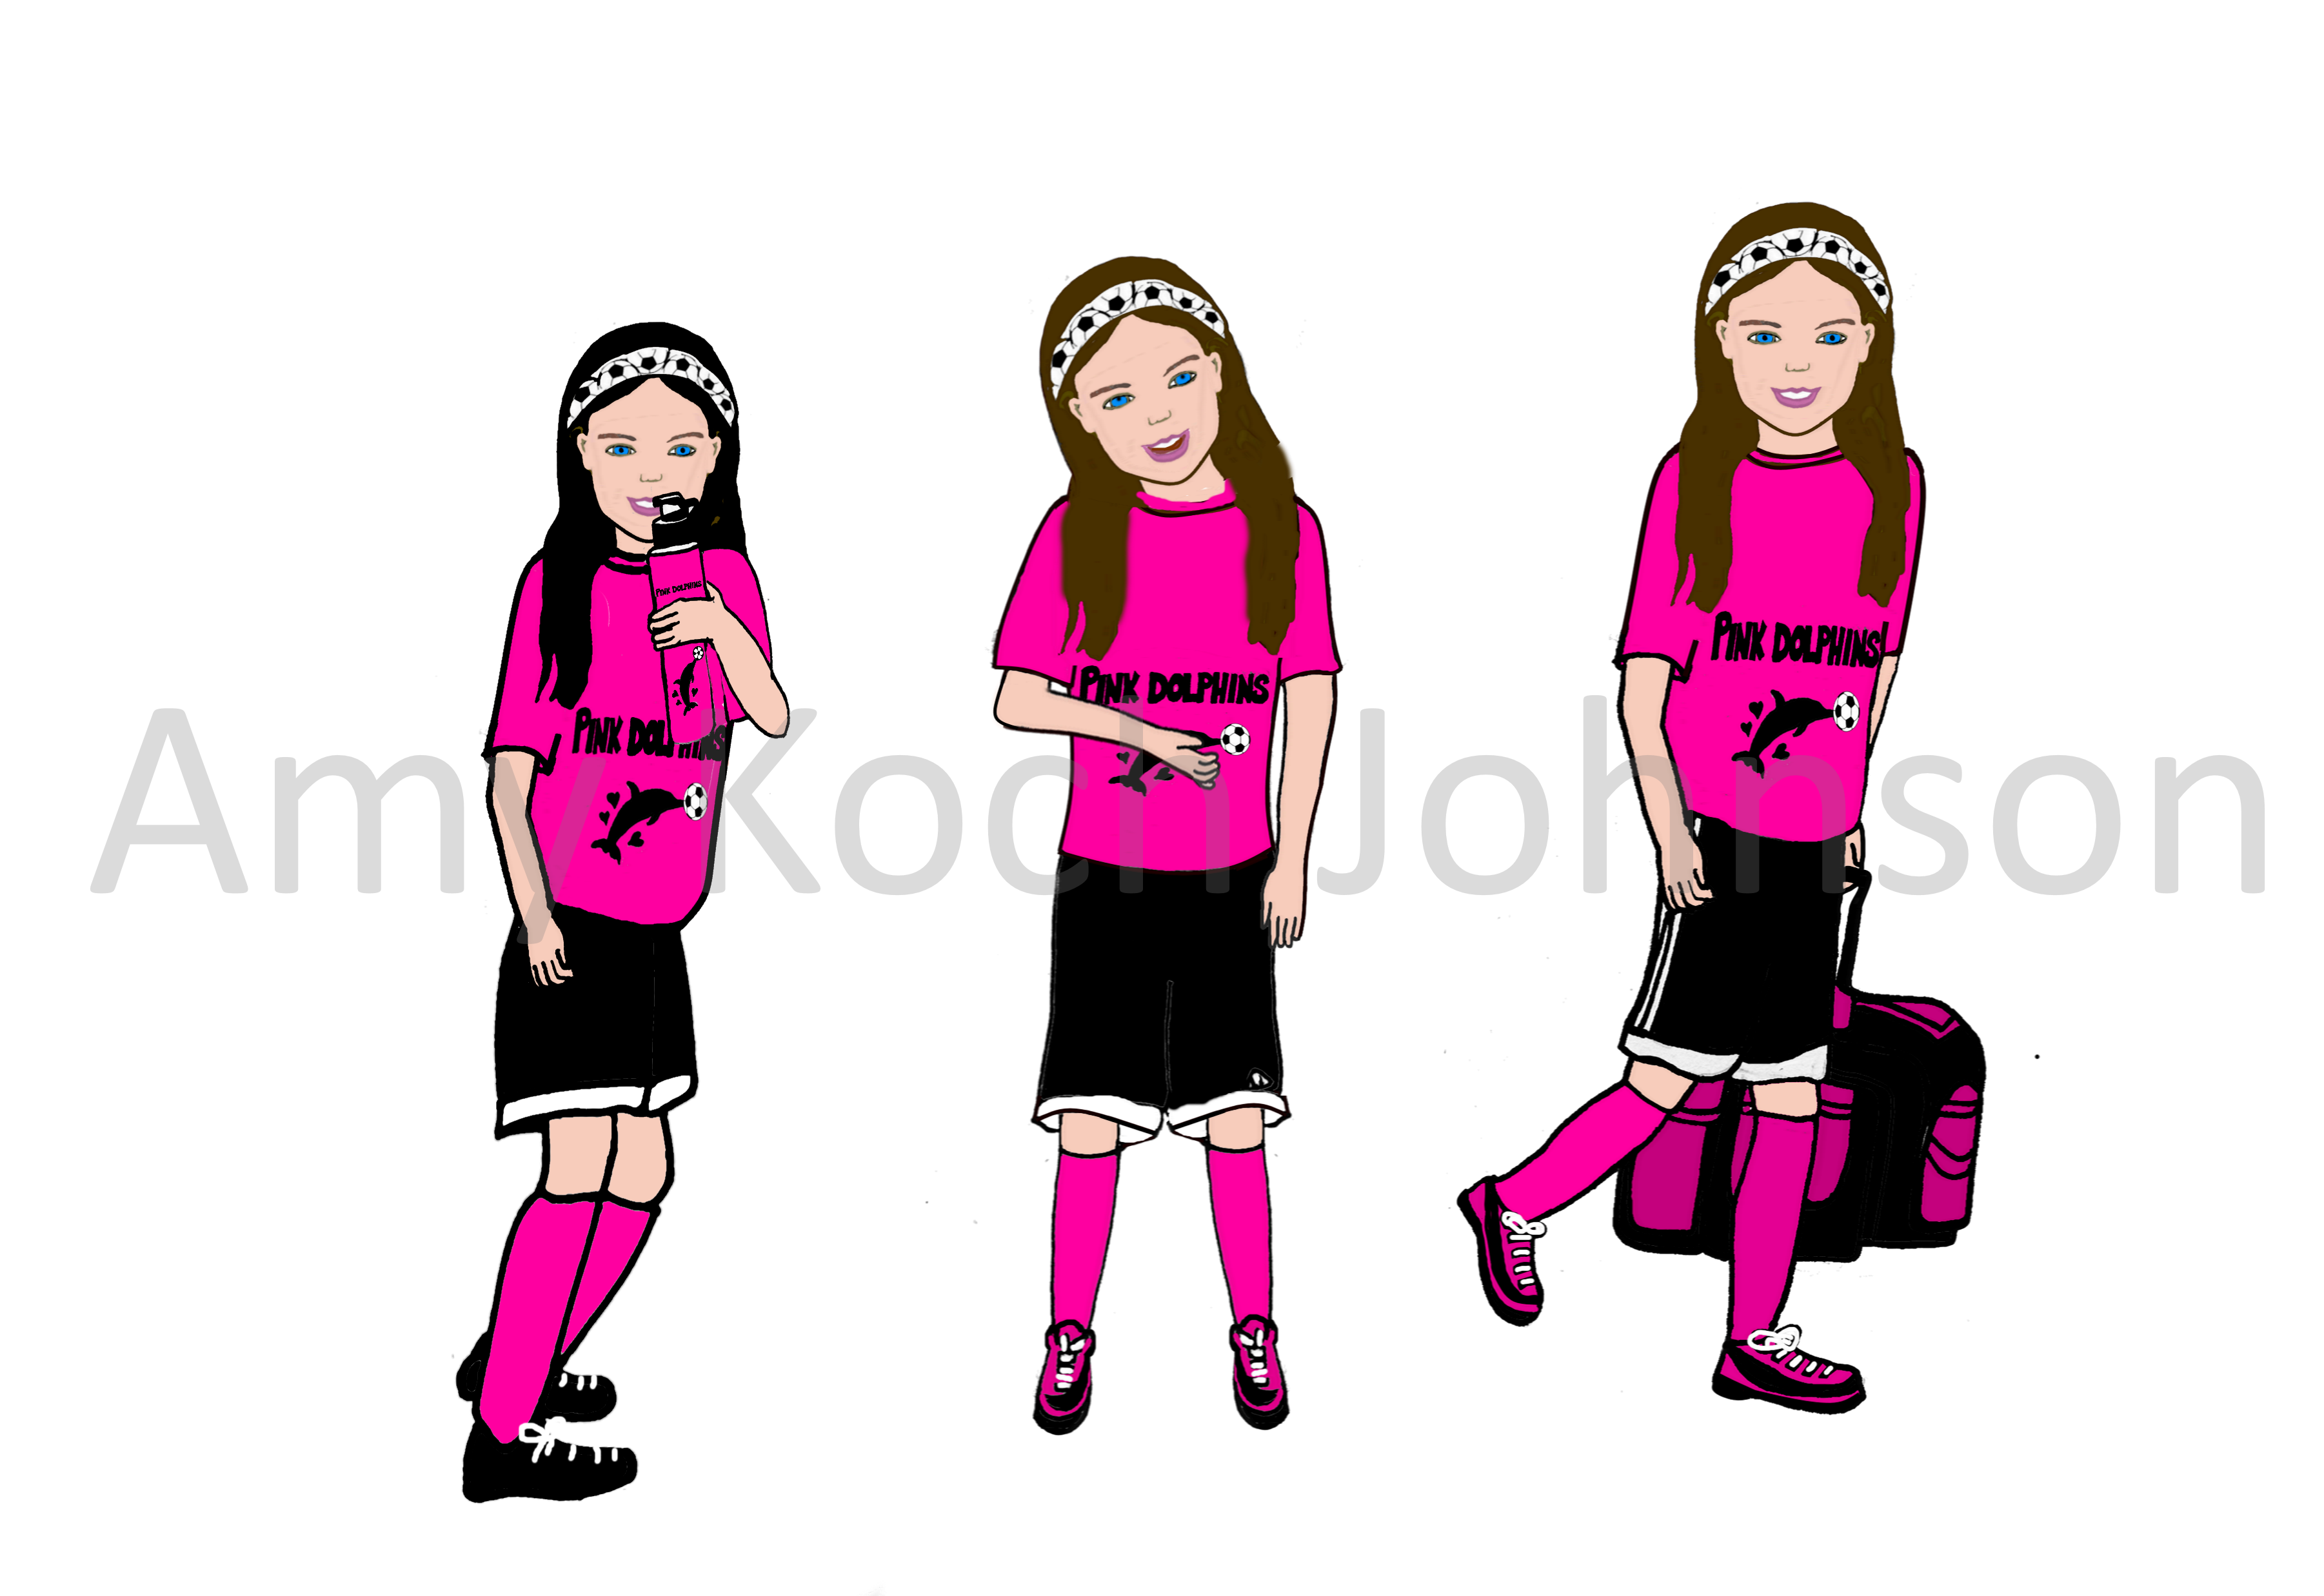 illustrationsoccerdaughterd